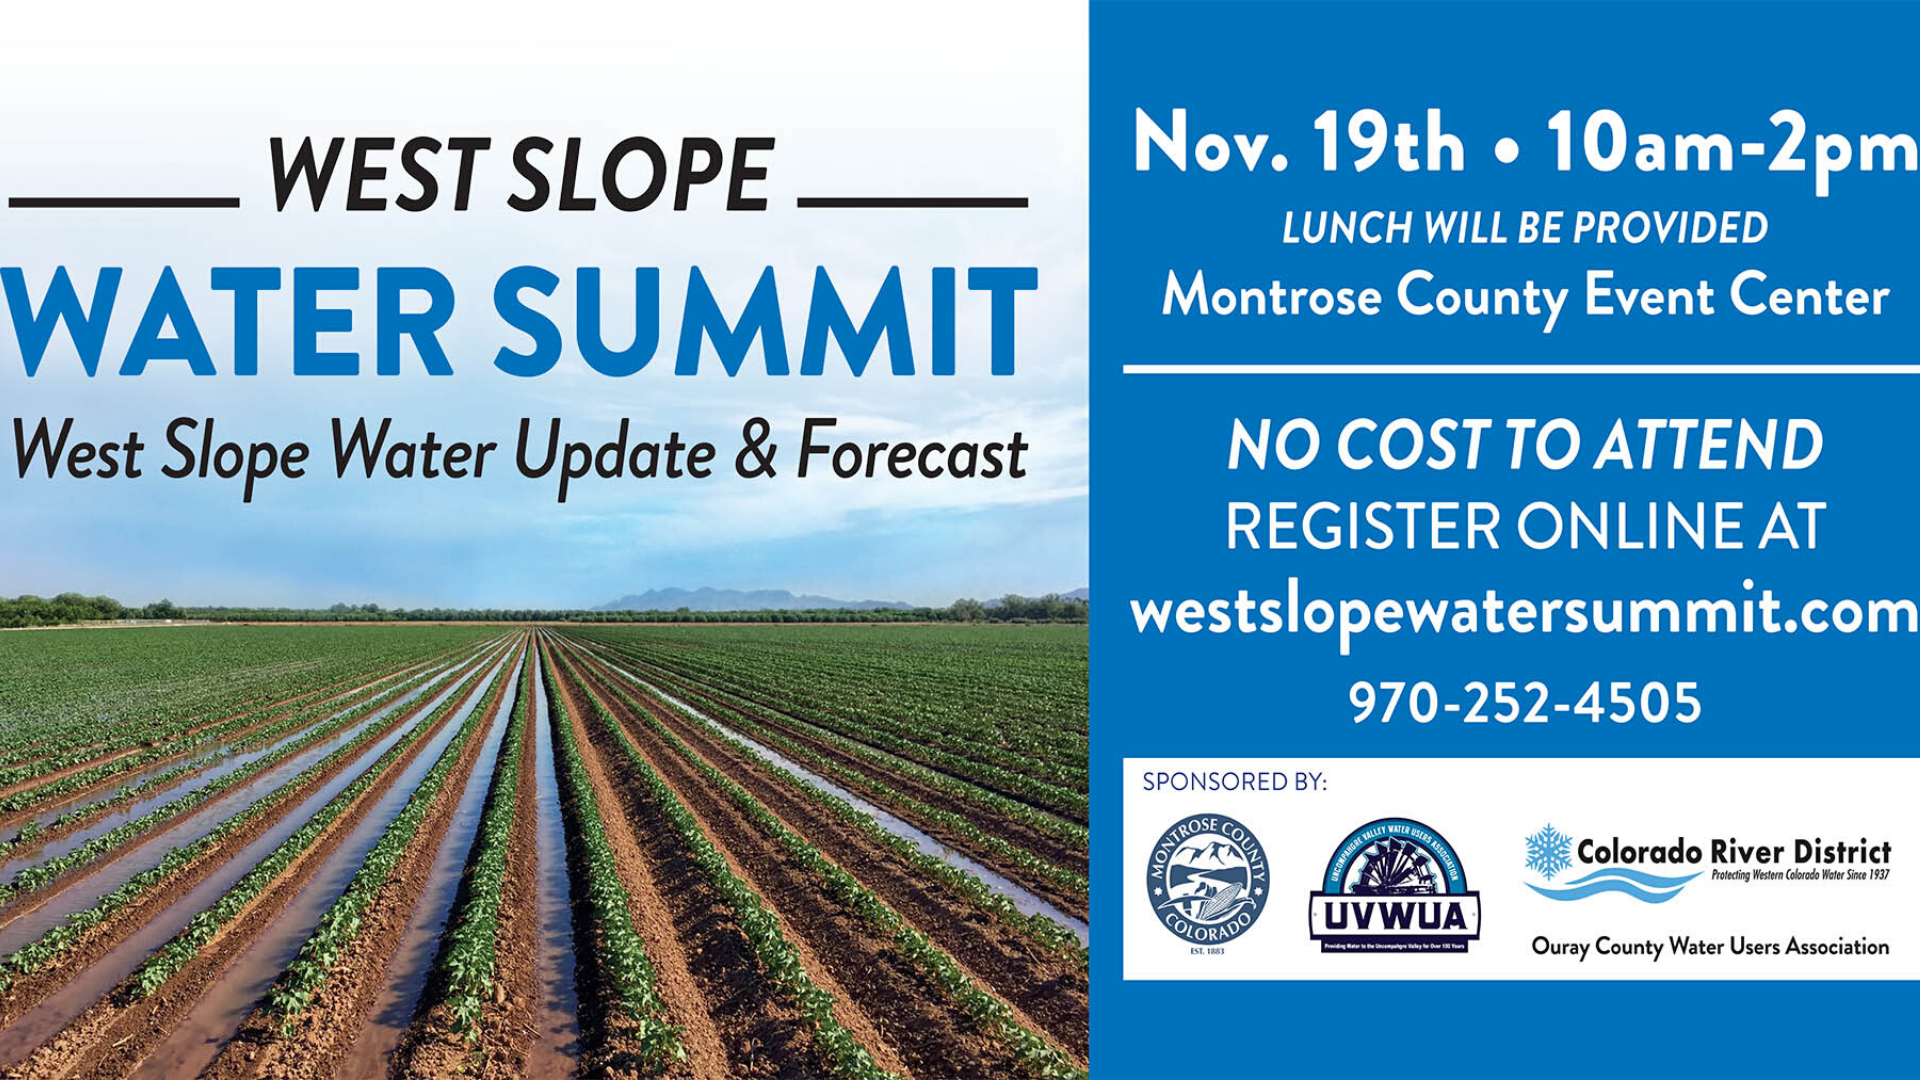 West Slope Water Summit